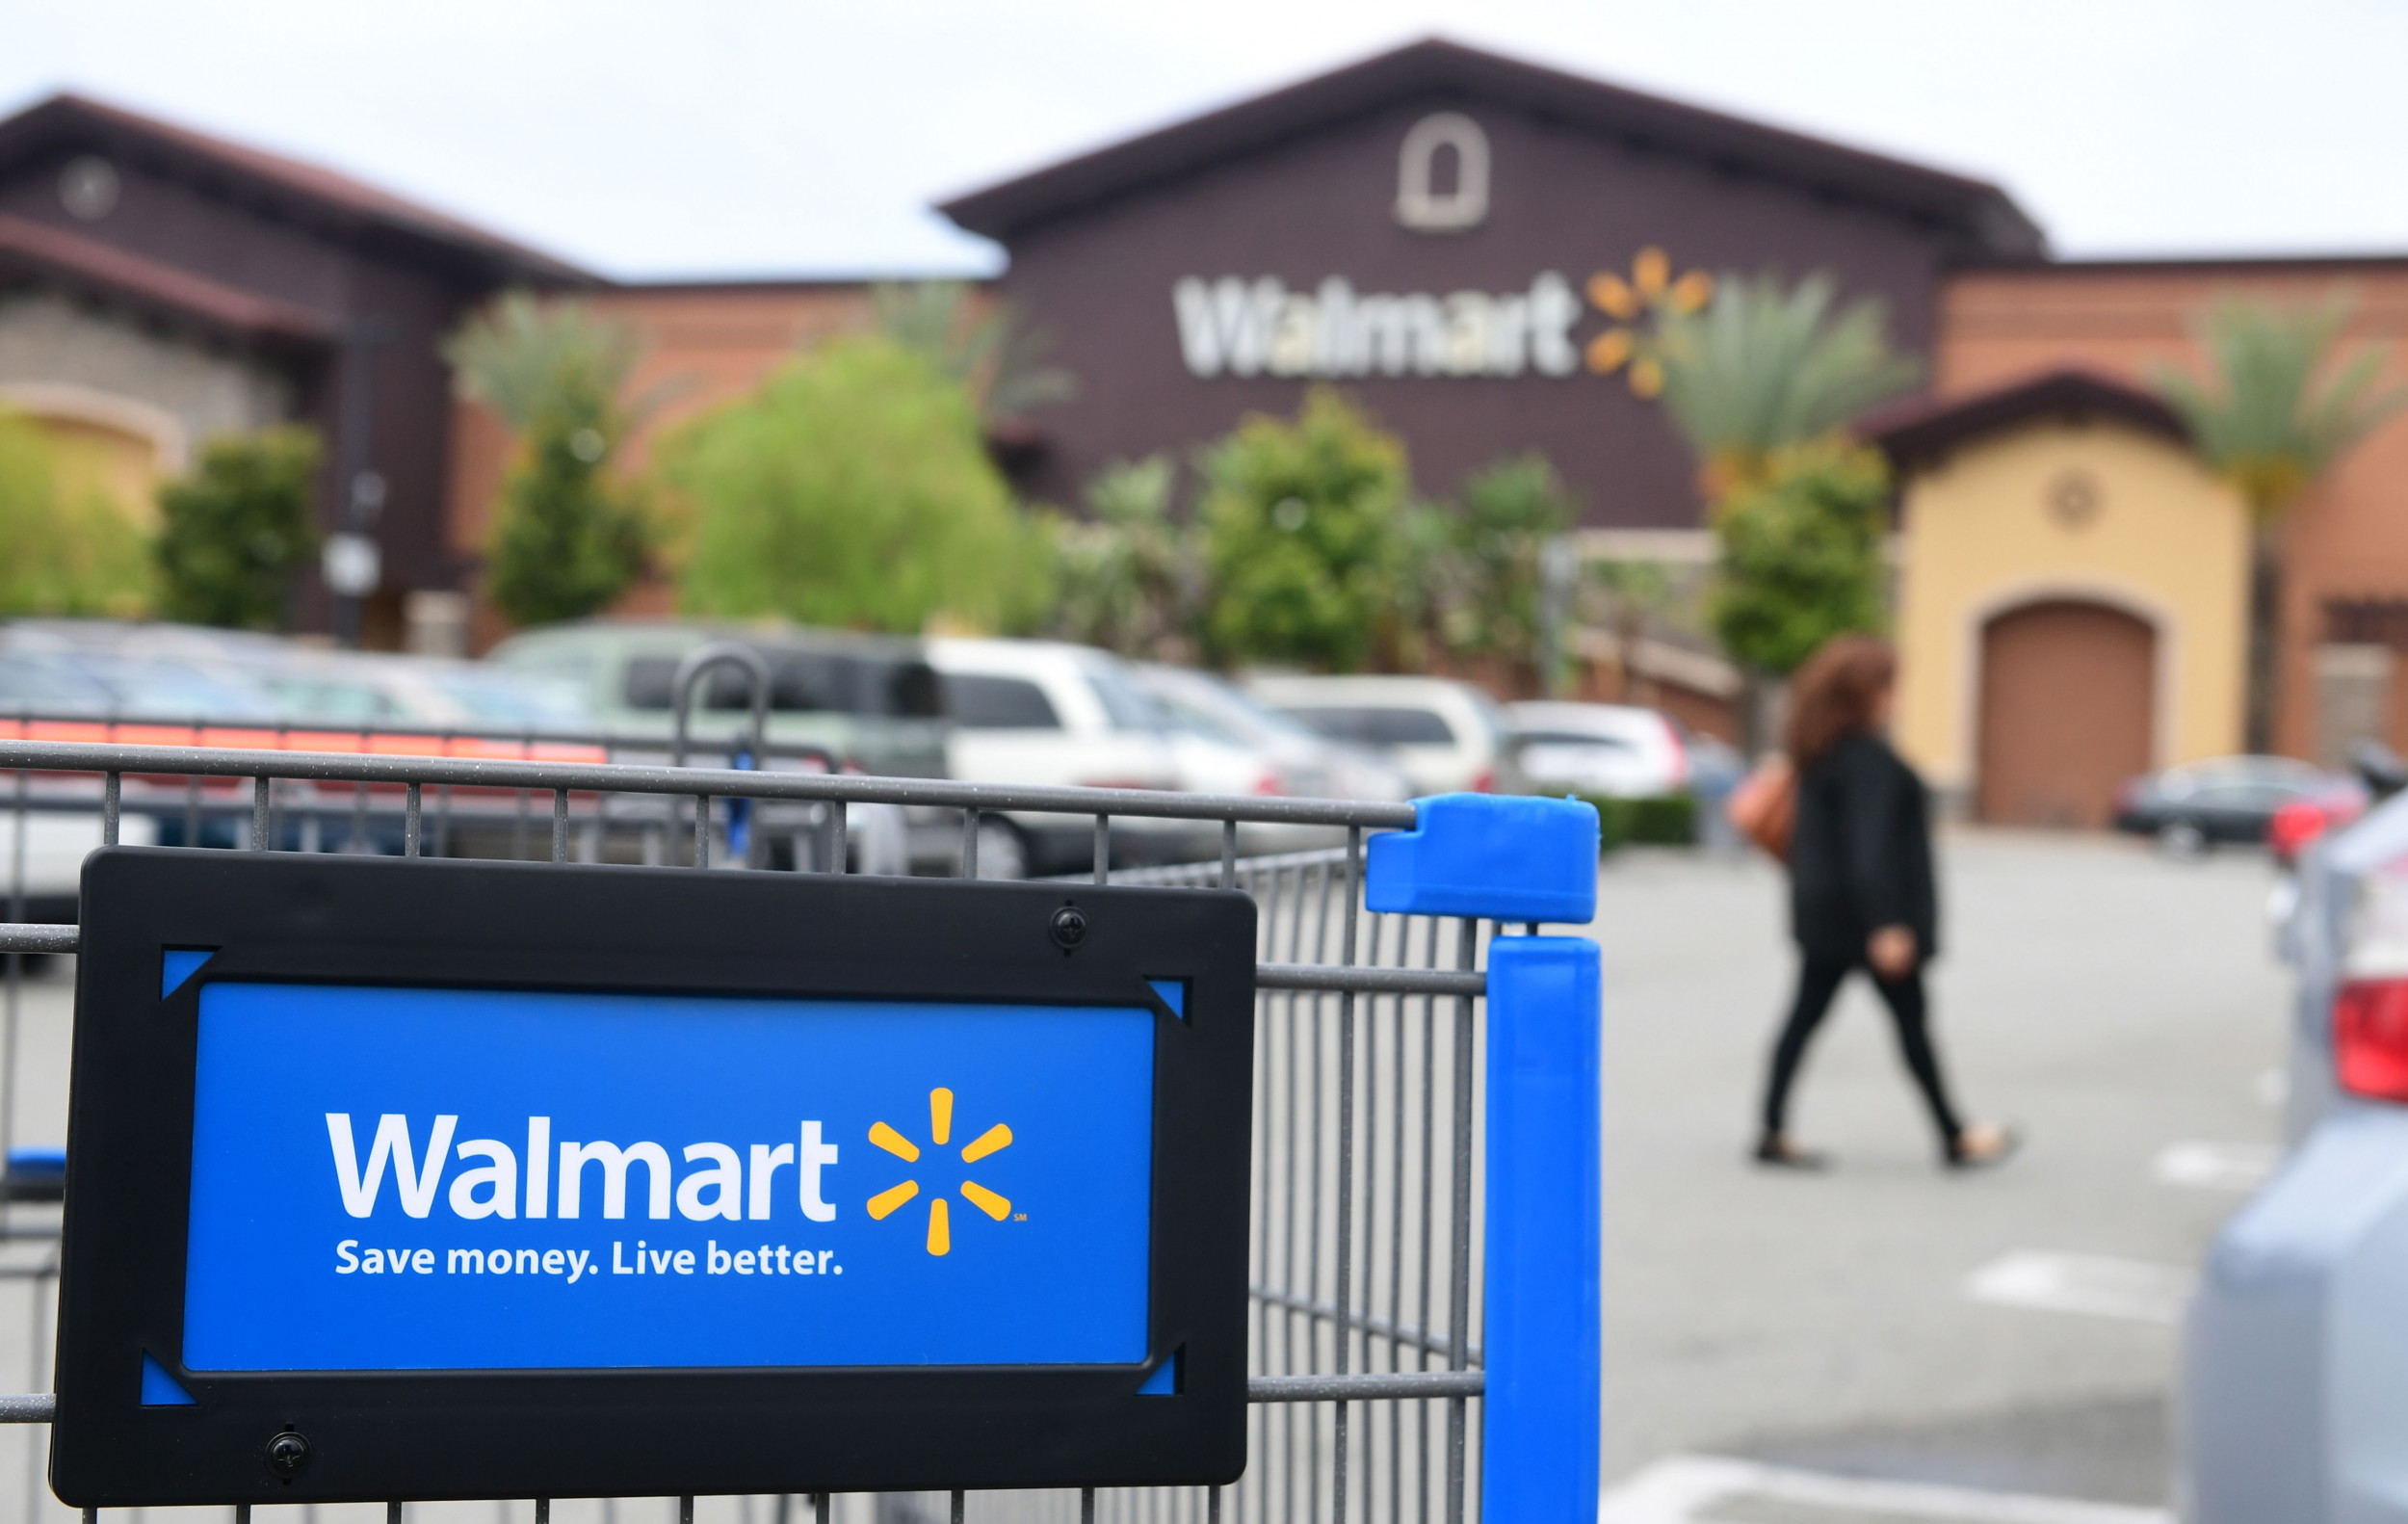 Couple arrested for coughing on Walmart employees, refusing to wear masks